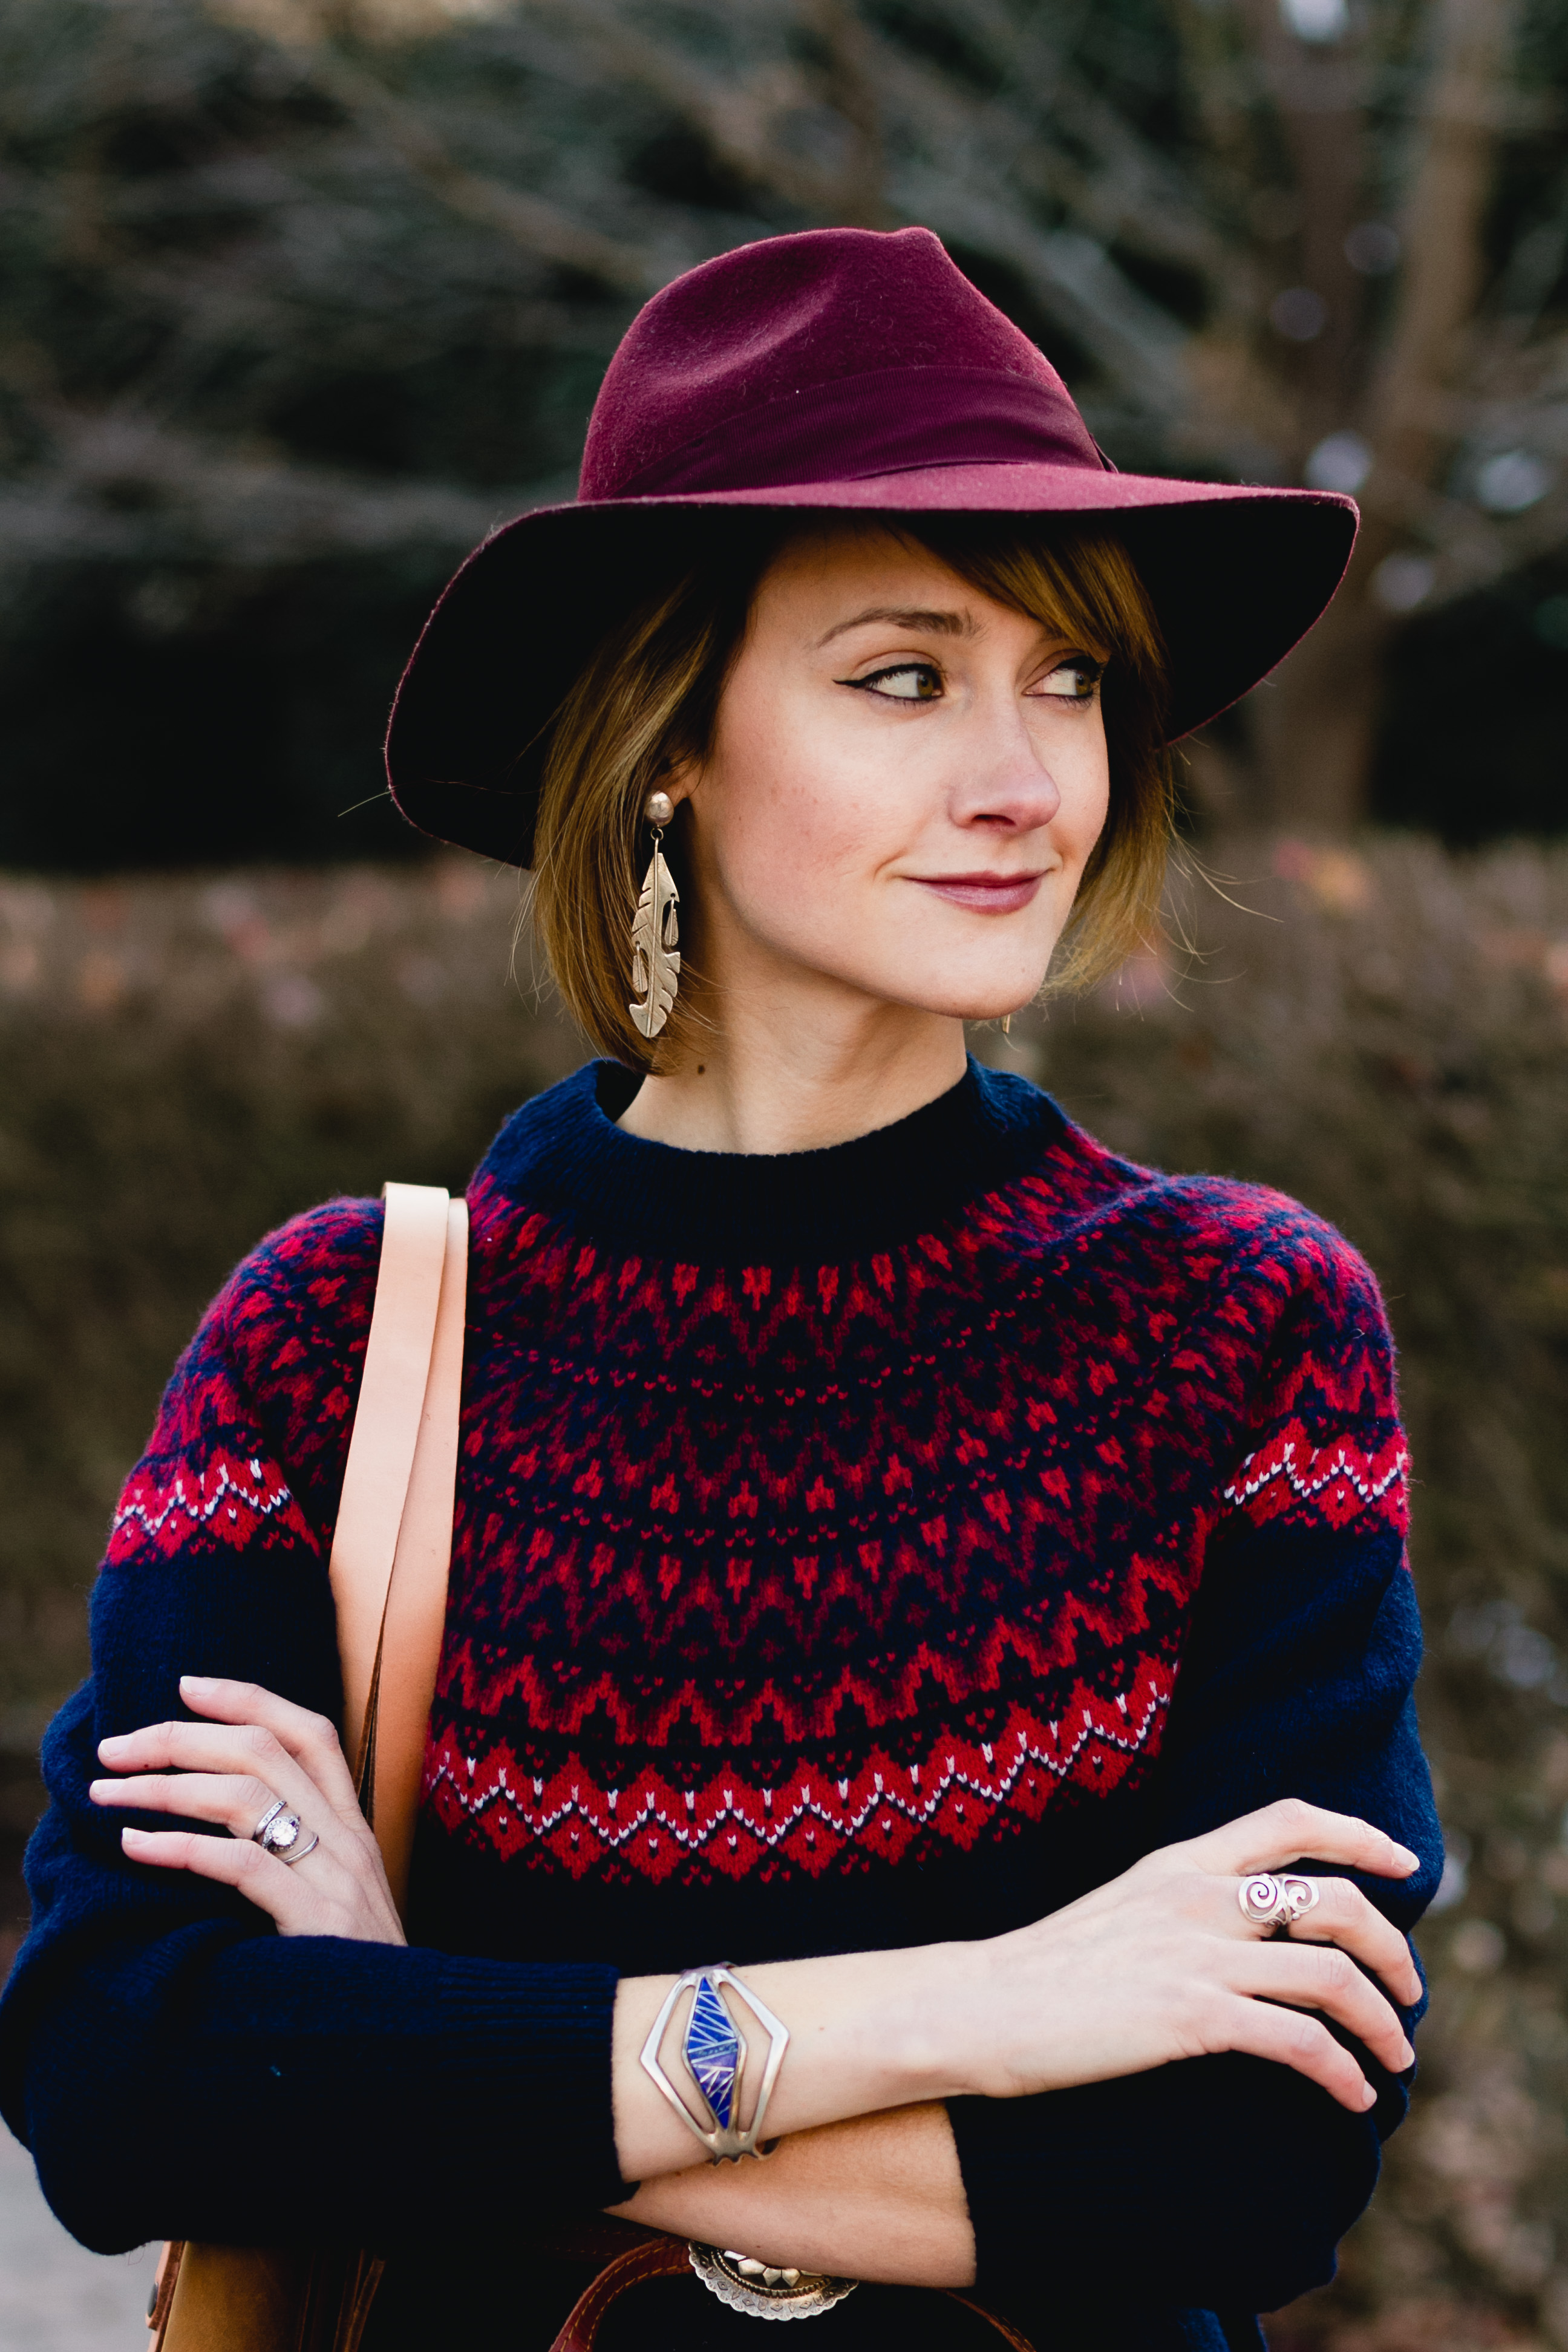 Woolovers fair isle dress and red fedora